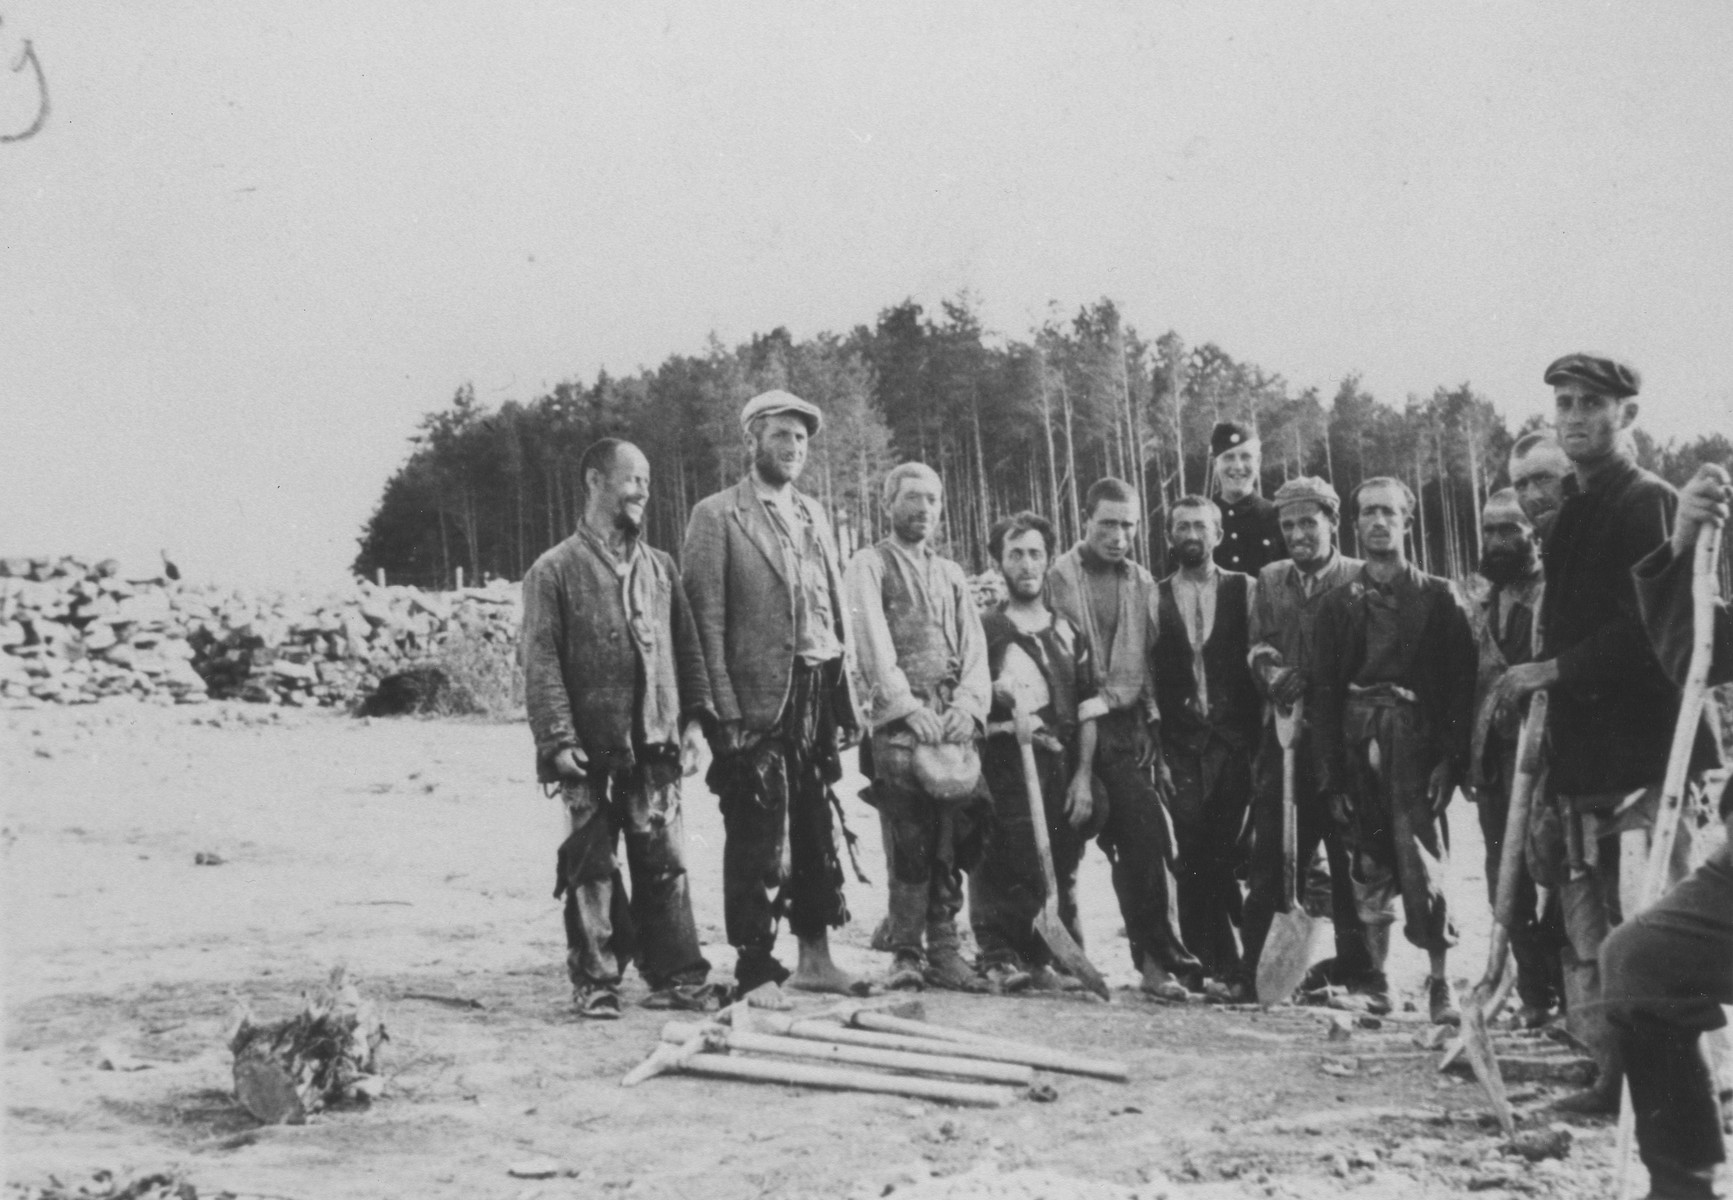 Group portrait of Jewish forced laborers at the Belzec camp.